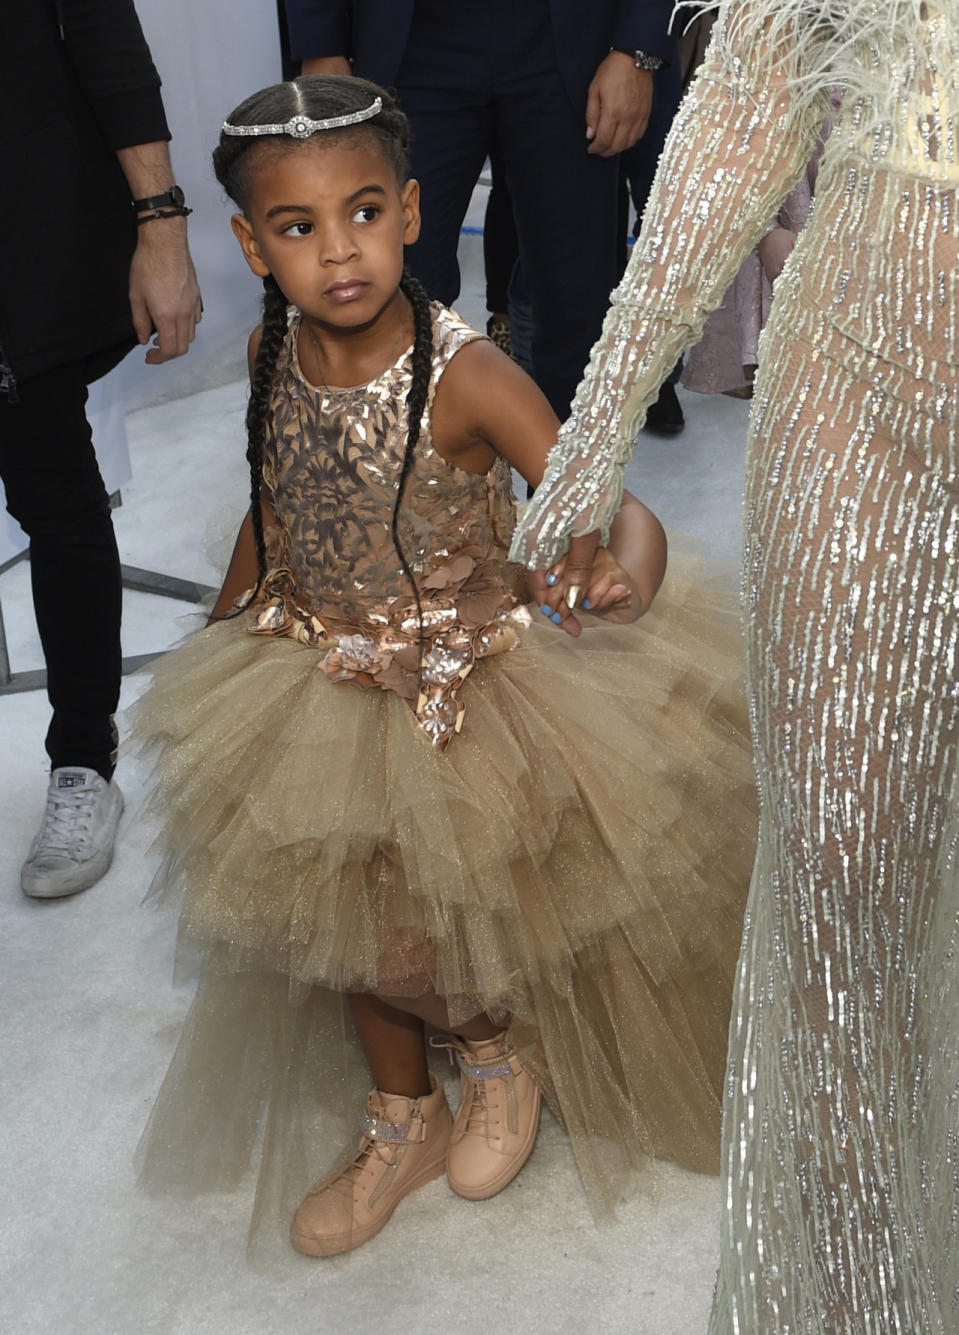 Blue Ivy in a dress from Mischka Aoki.